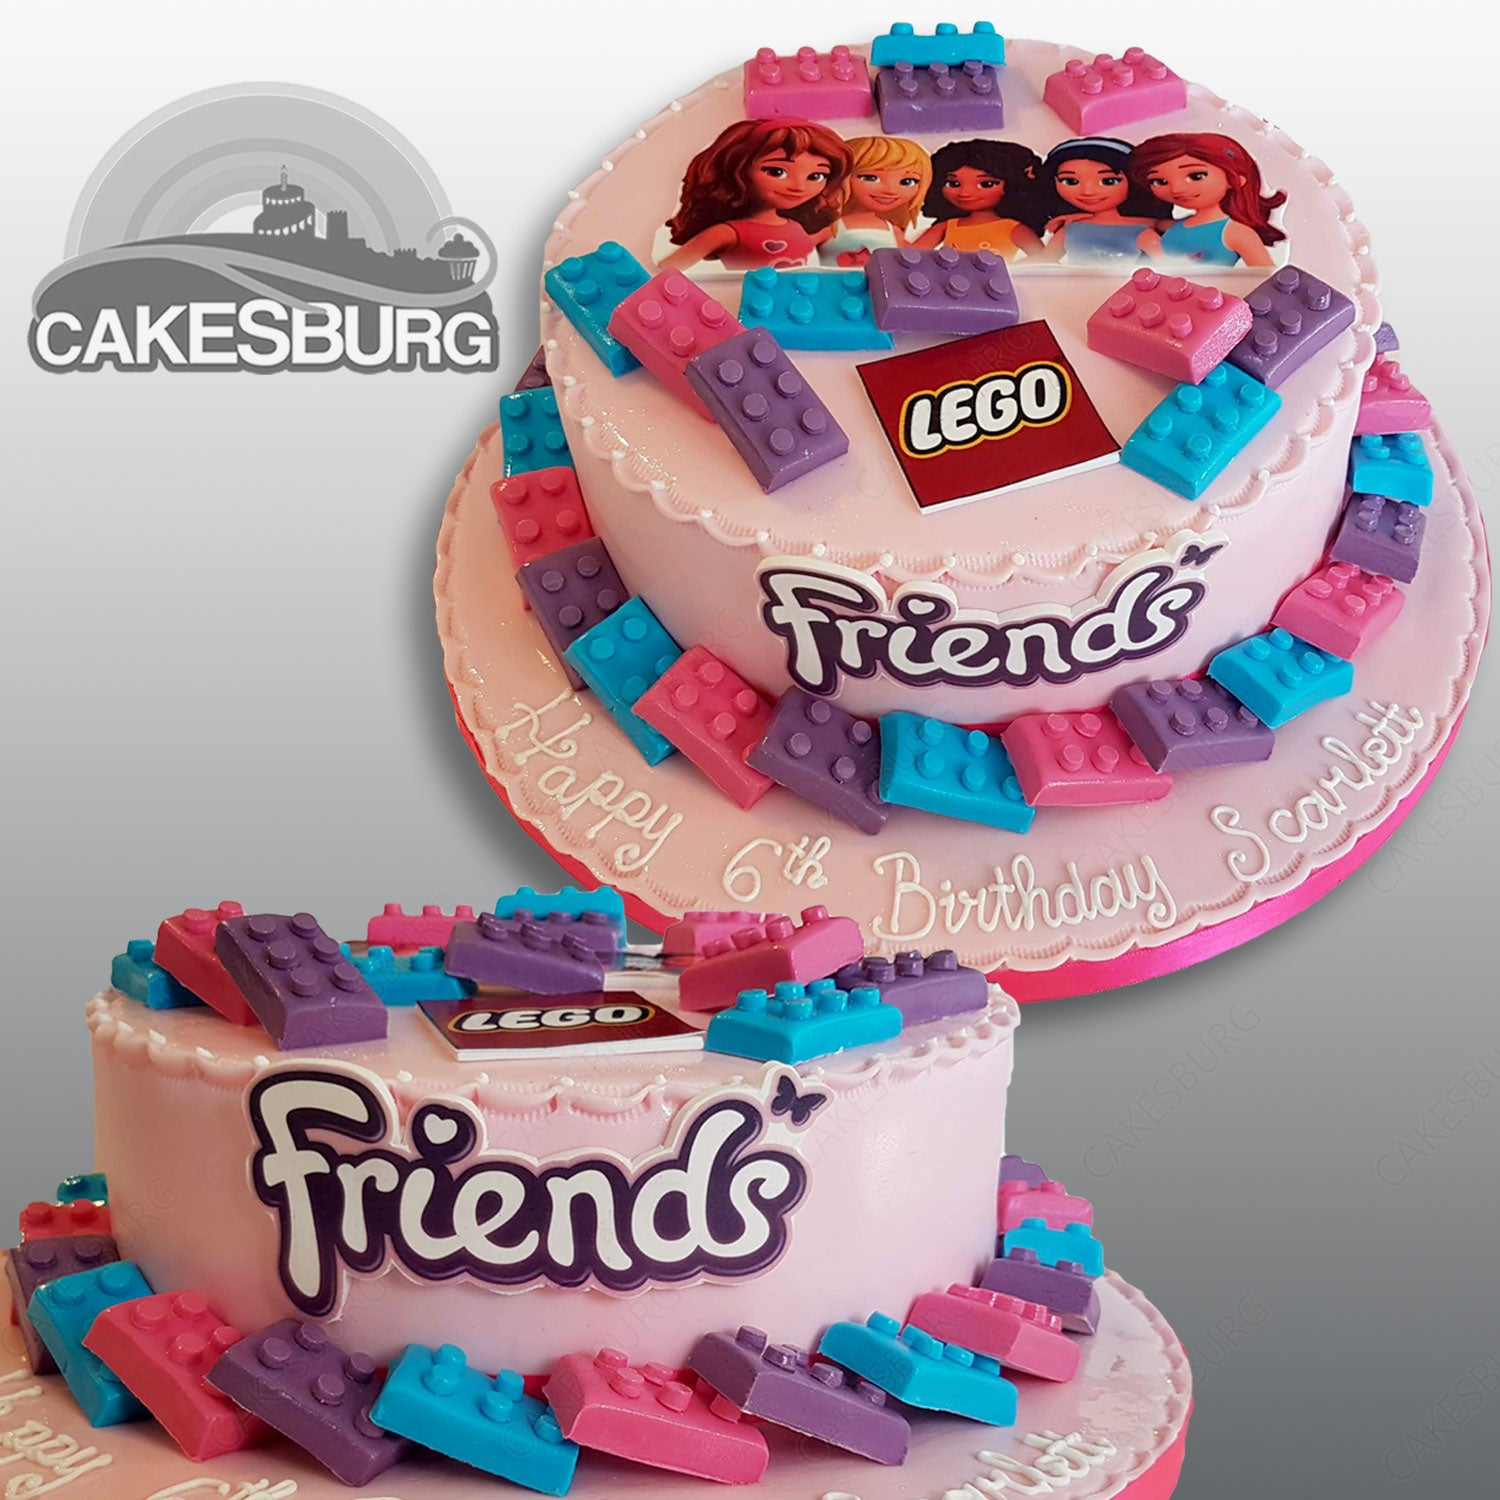 Astounding Lego Friends Cake Cakesburg Online Premium Cake Shop Personalised Birthday Cards Paralily Jamesorg